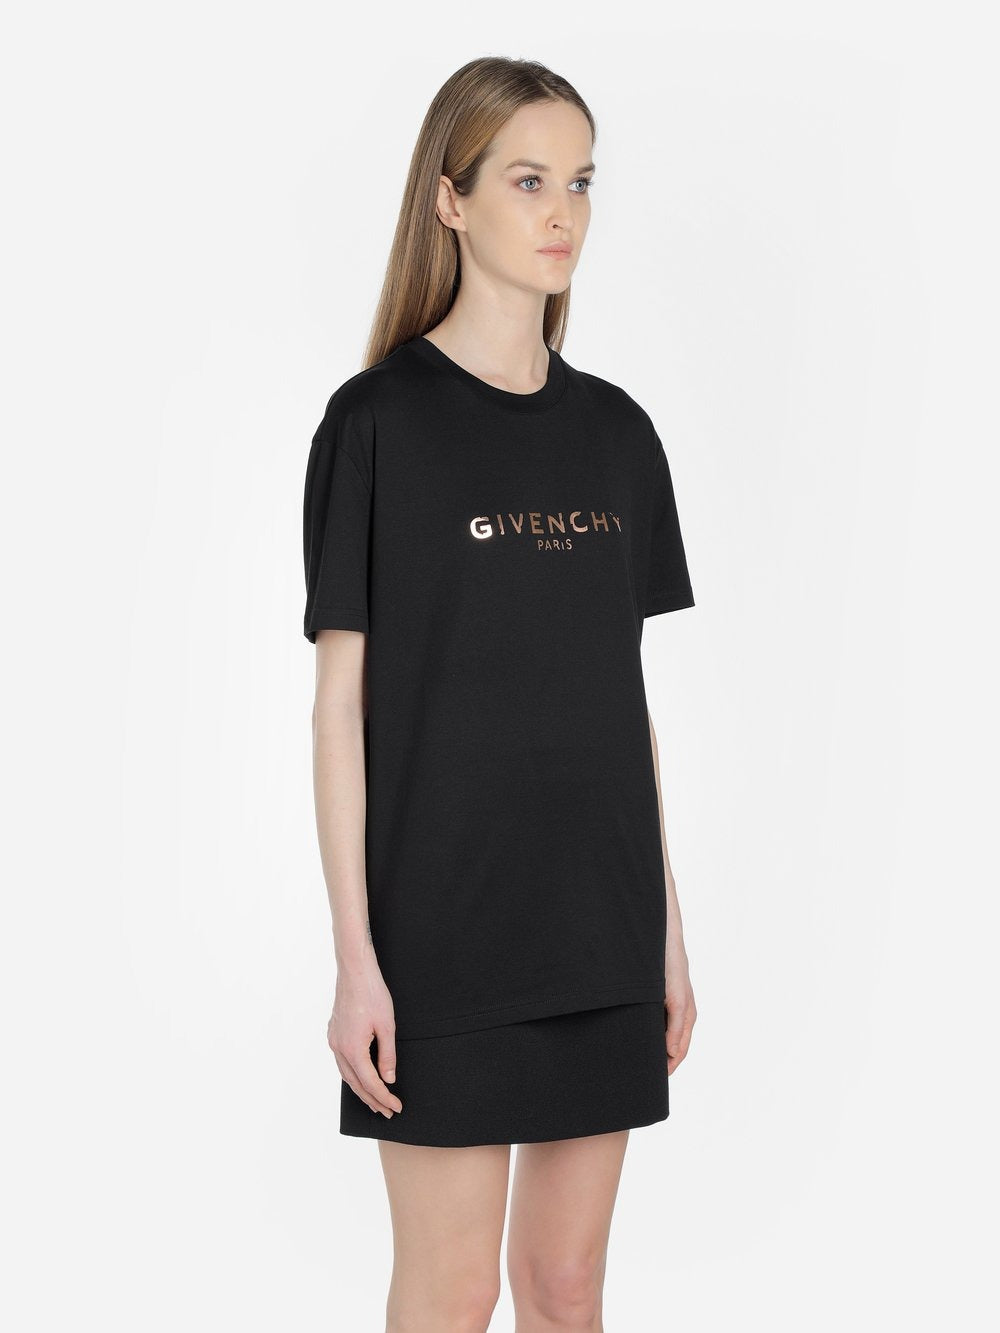 Givenchy women's black vintage logo t-shirt